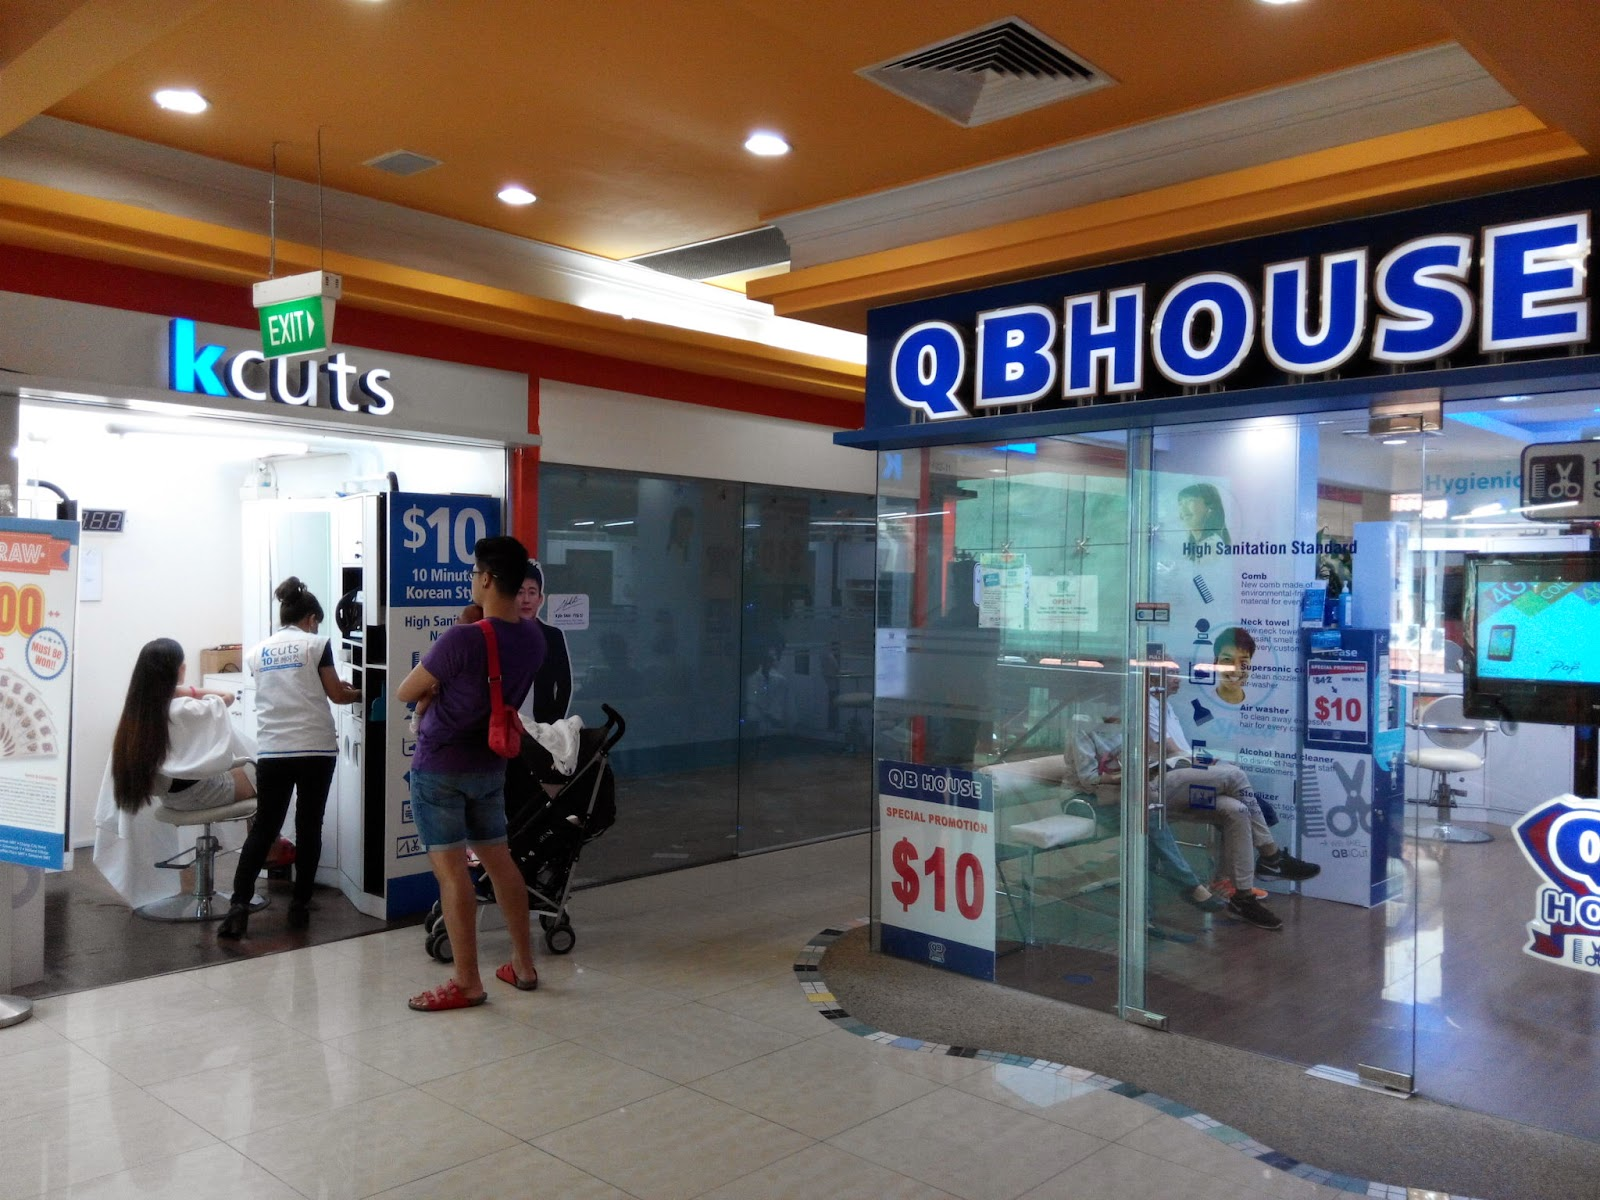 kcuts and QM House barbershops, Holland Village outlet, Singapore